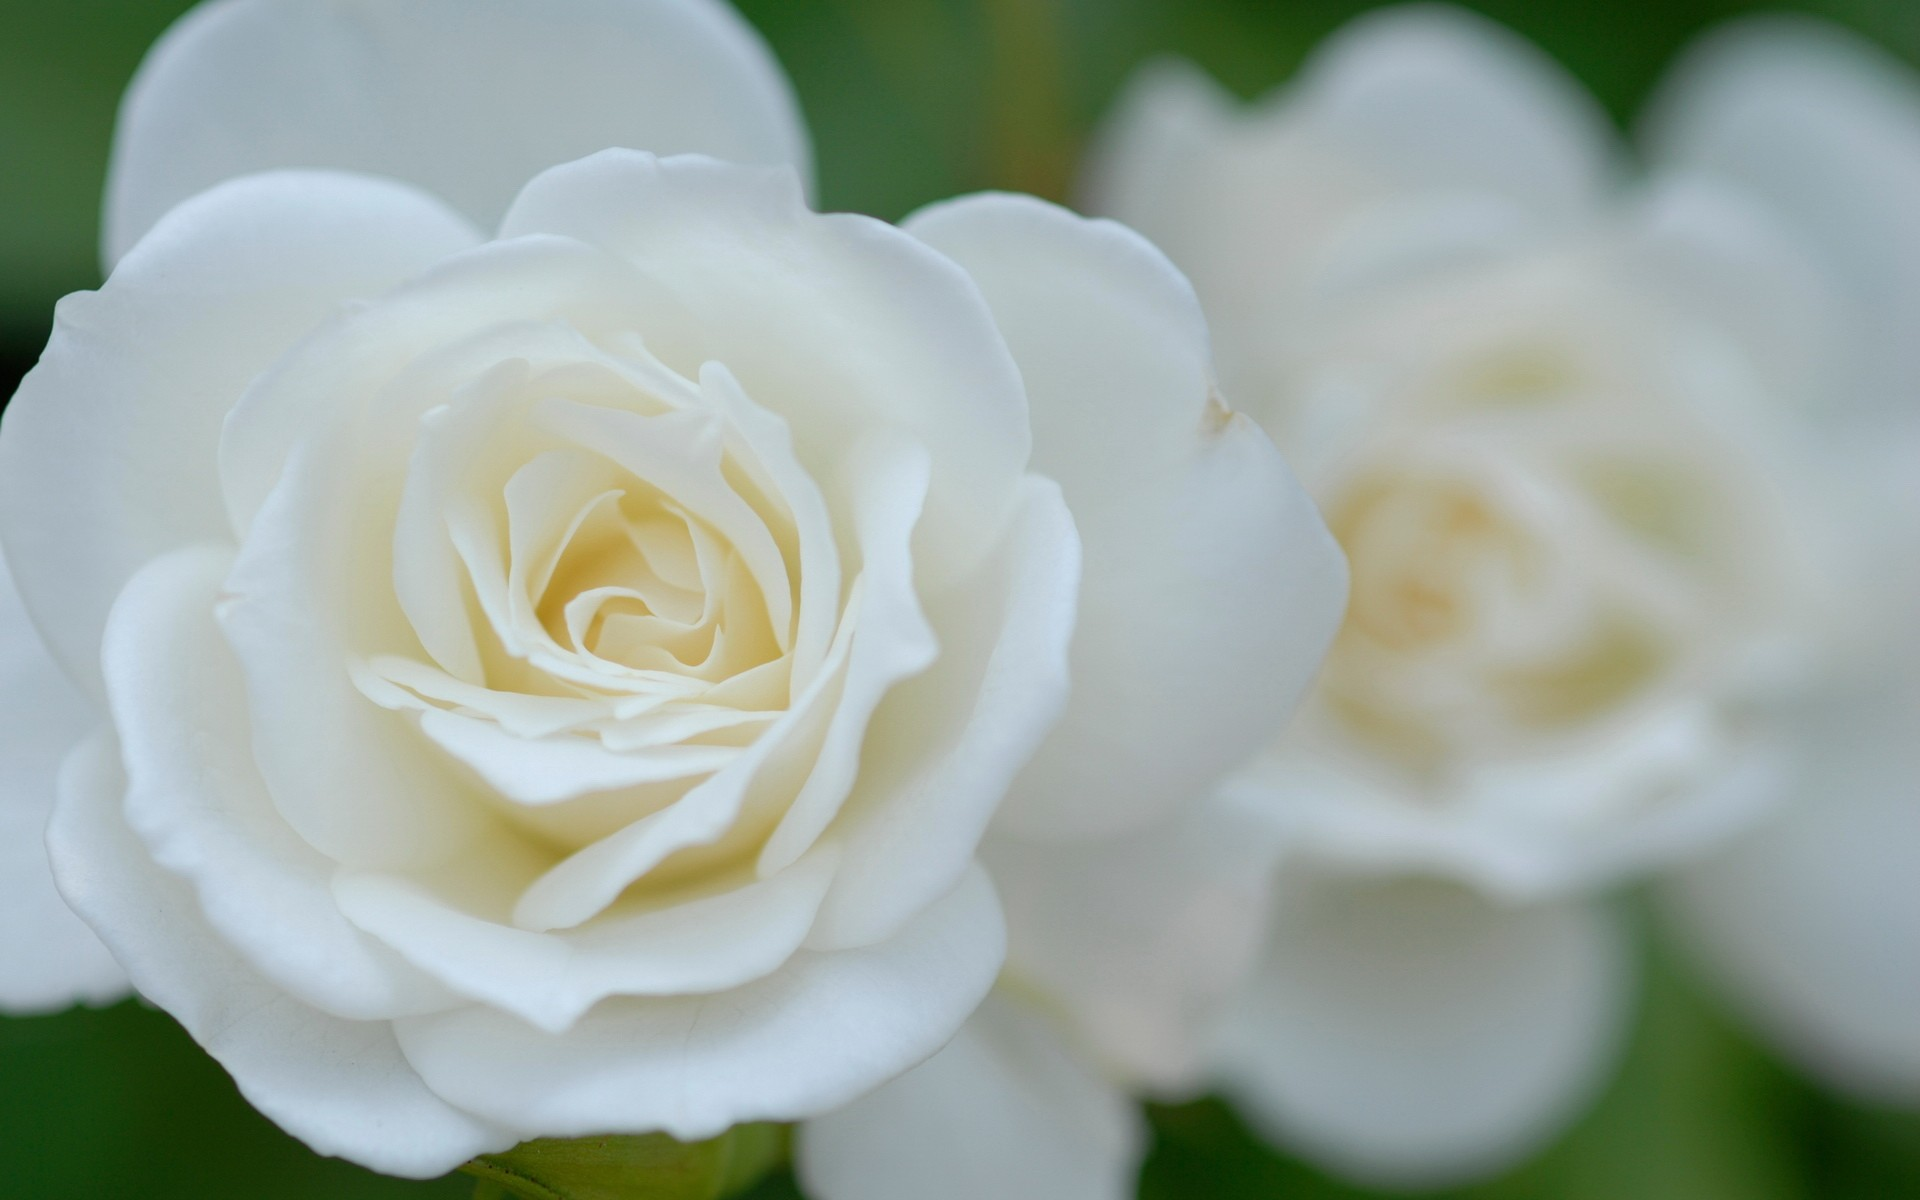 White flowers hd 3 background wallpaper hdflowerwallpaper white flowers hd background mightylinksfo Image collections